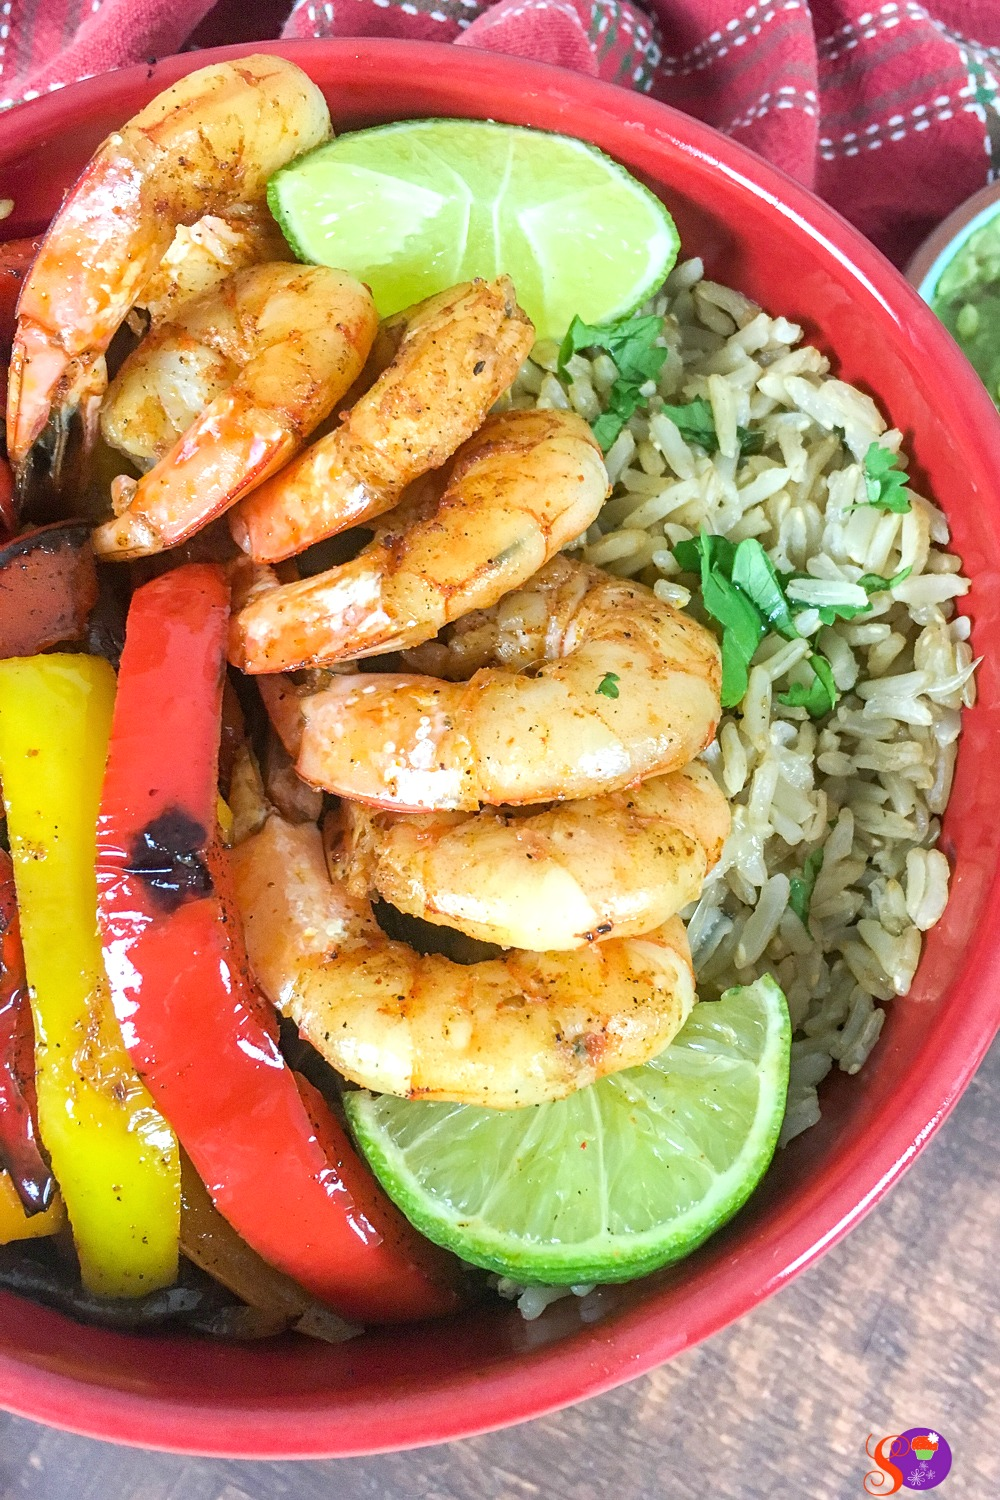 This delicious Shrimp Fajita Bowl recipe makes for a quick and easy, one-pot meal!